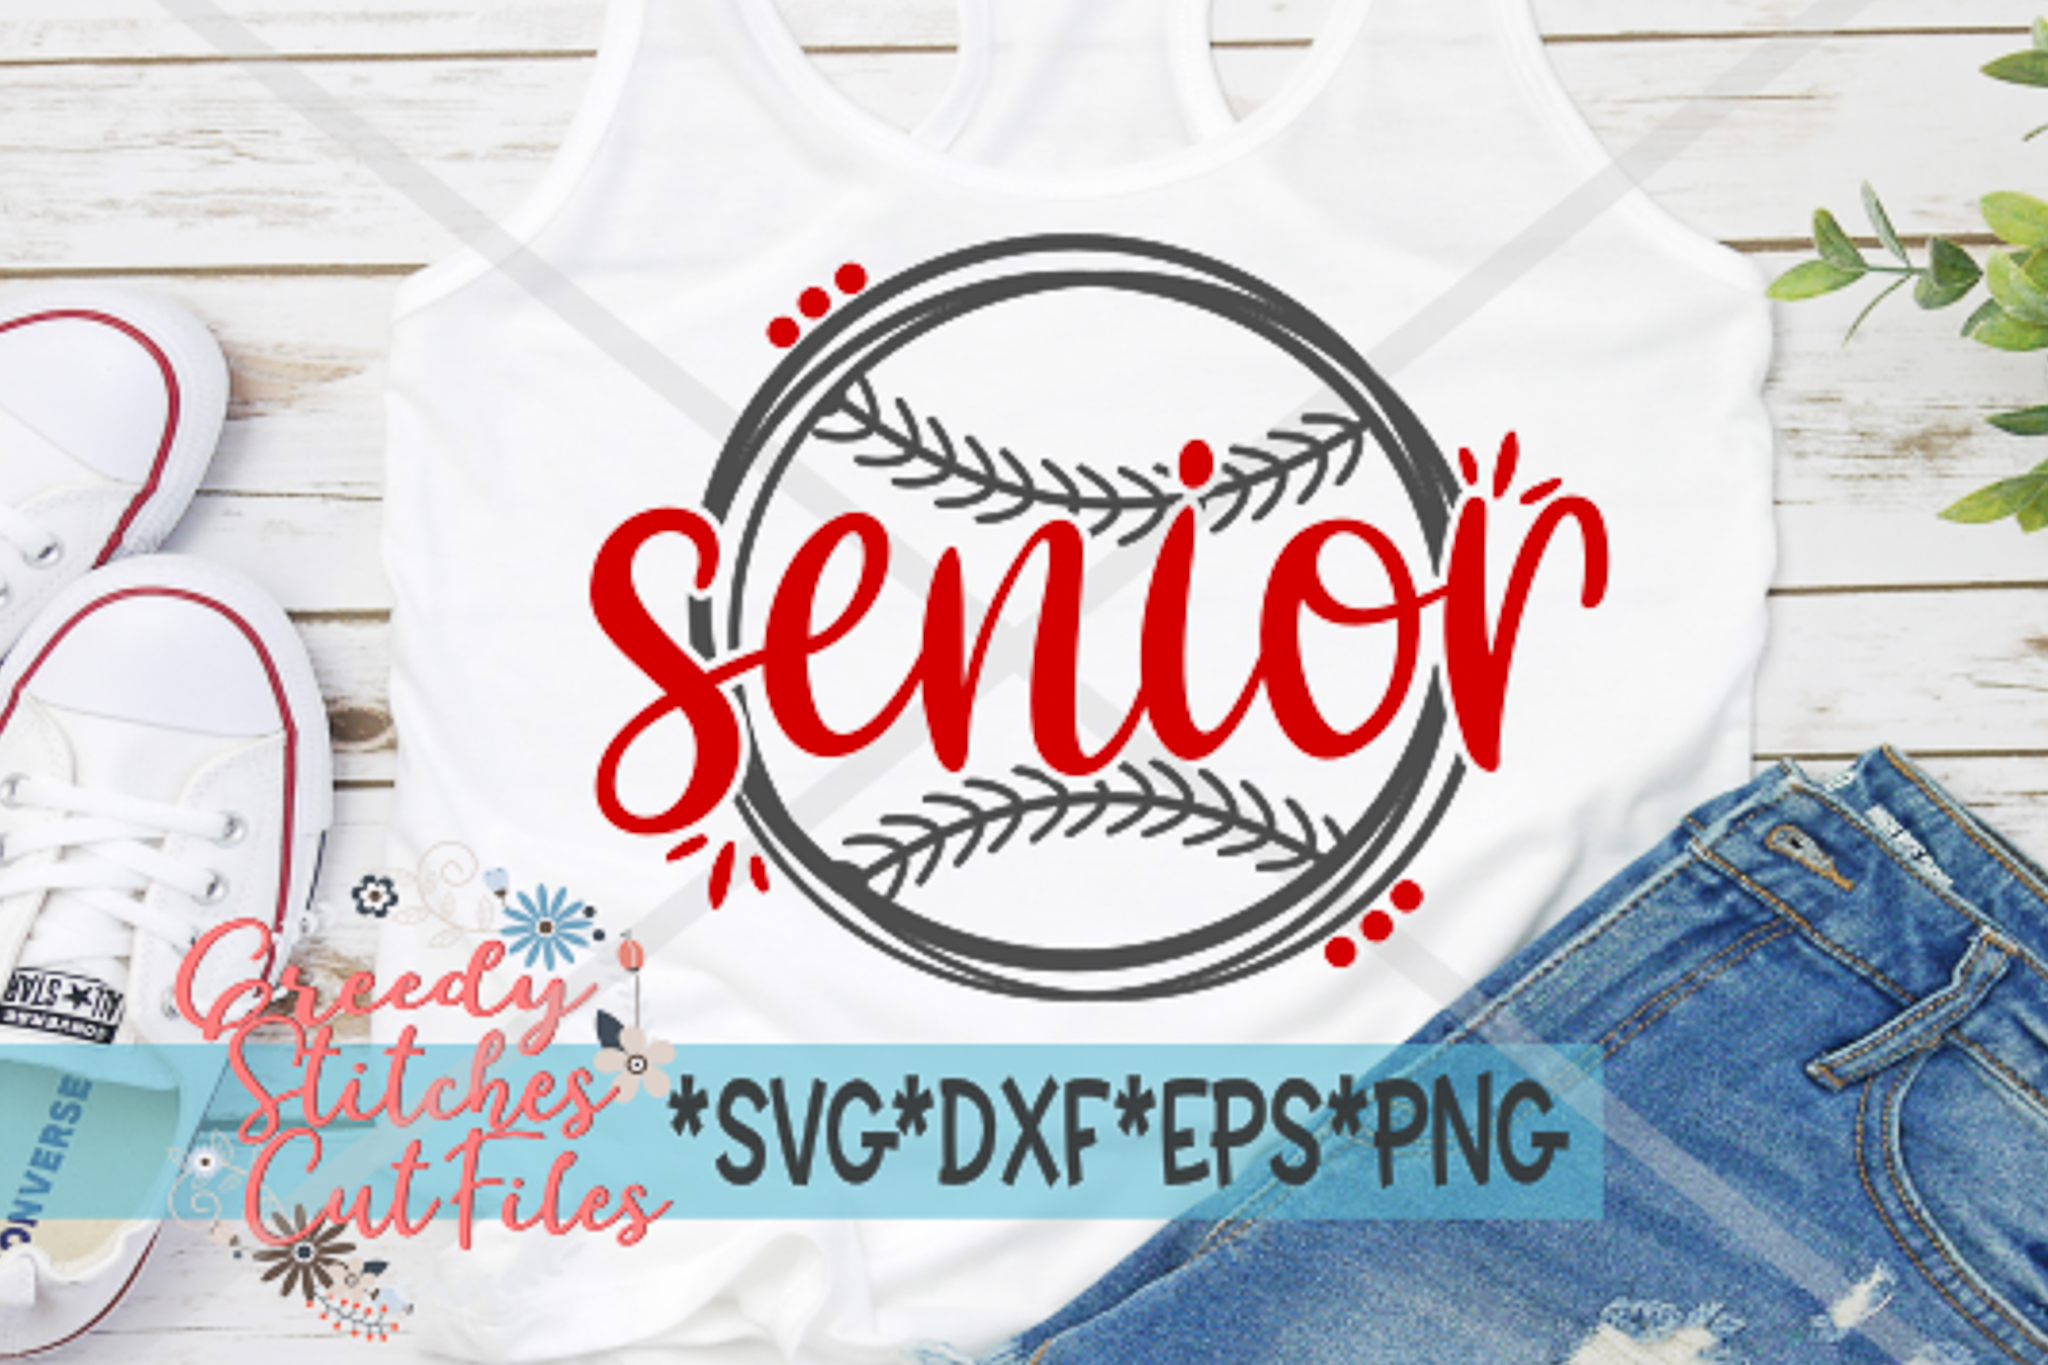 Senior Softball SVG, DXF, EPS, PNG Files example image 2